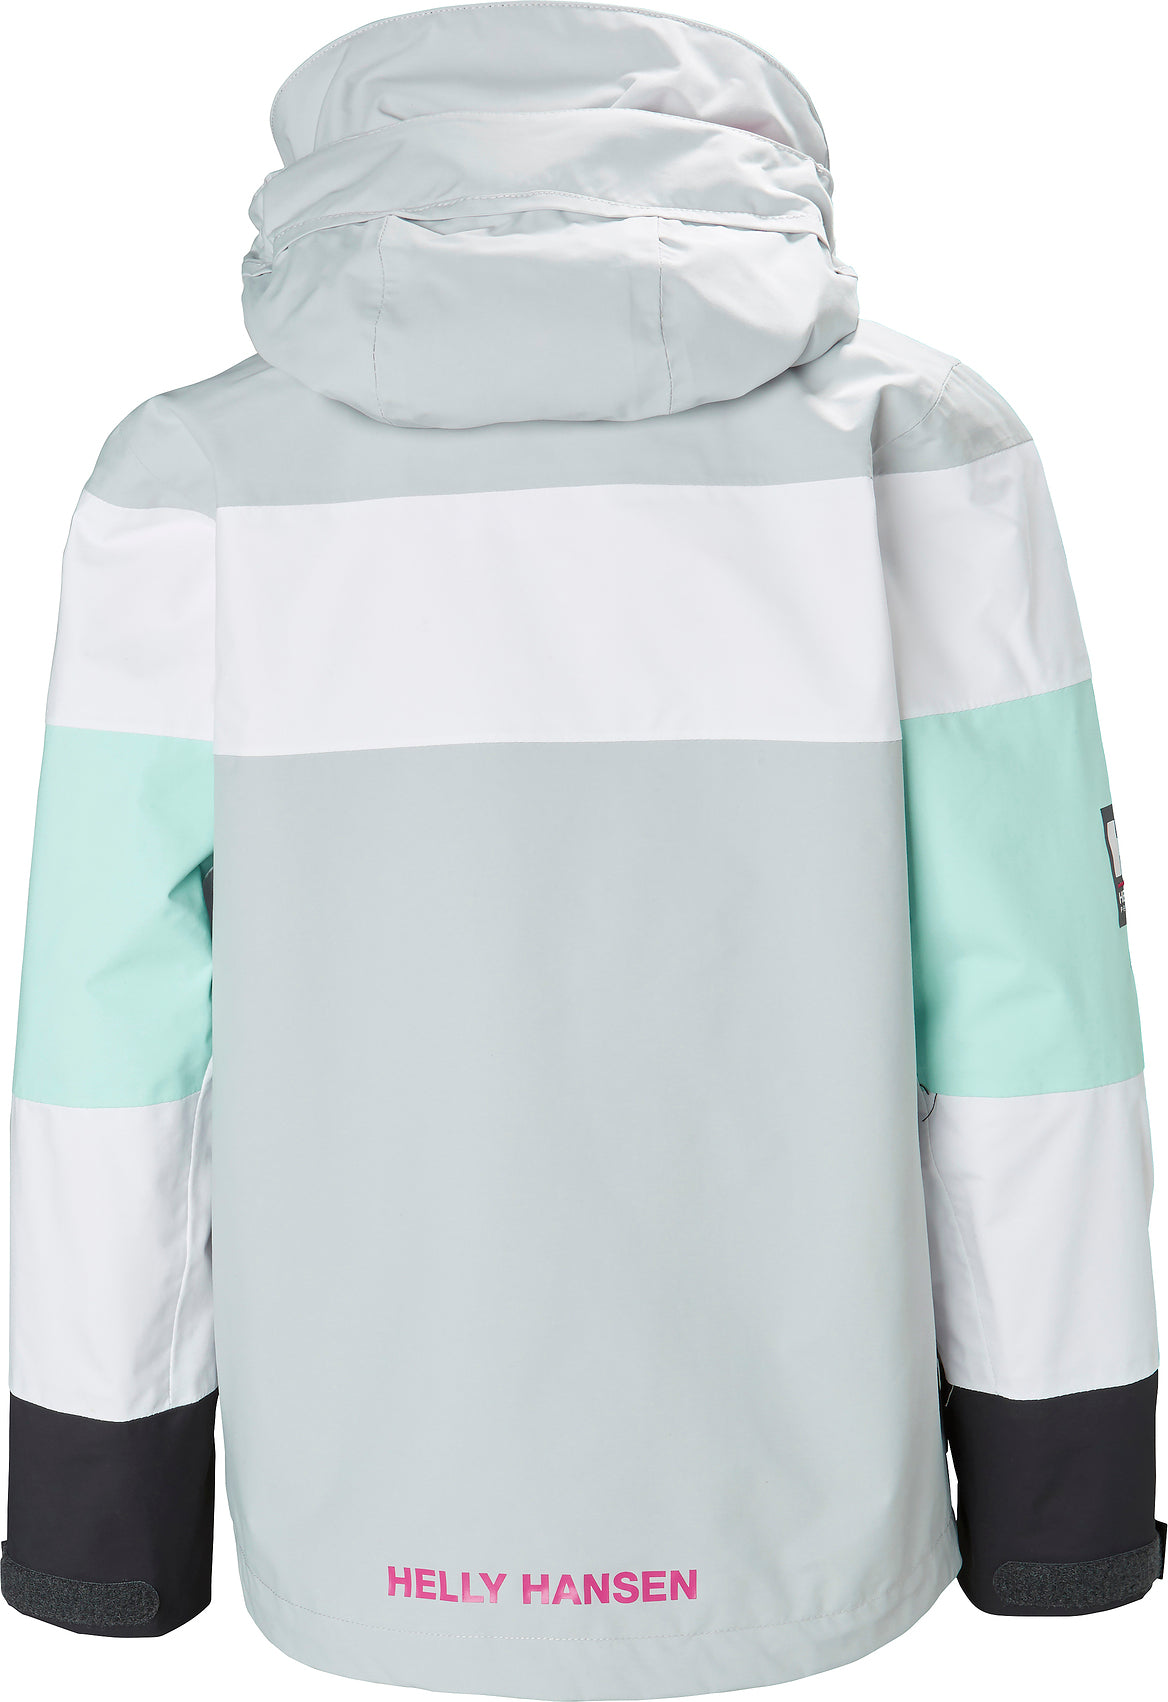 new release up-to-date styling hot-selling Helly Hansen Jr Salt Port Jacket - Junior